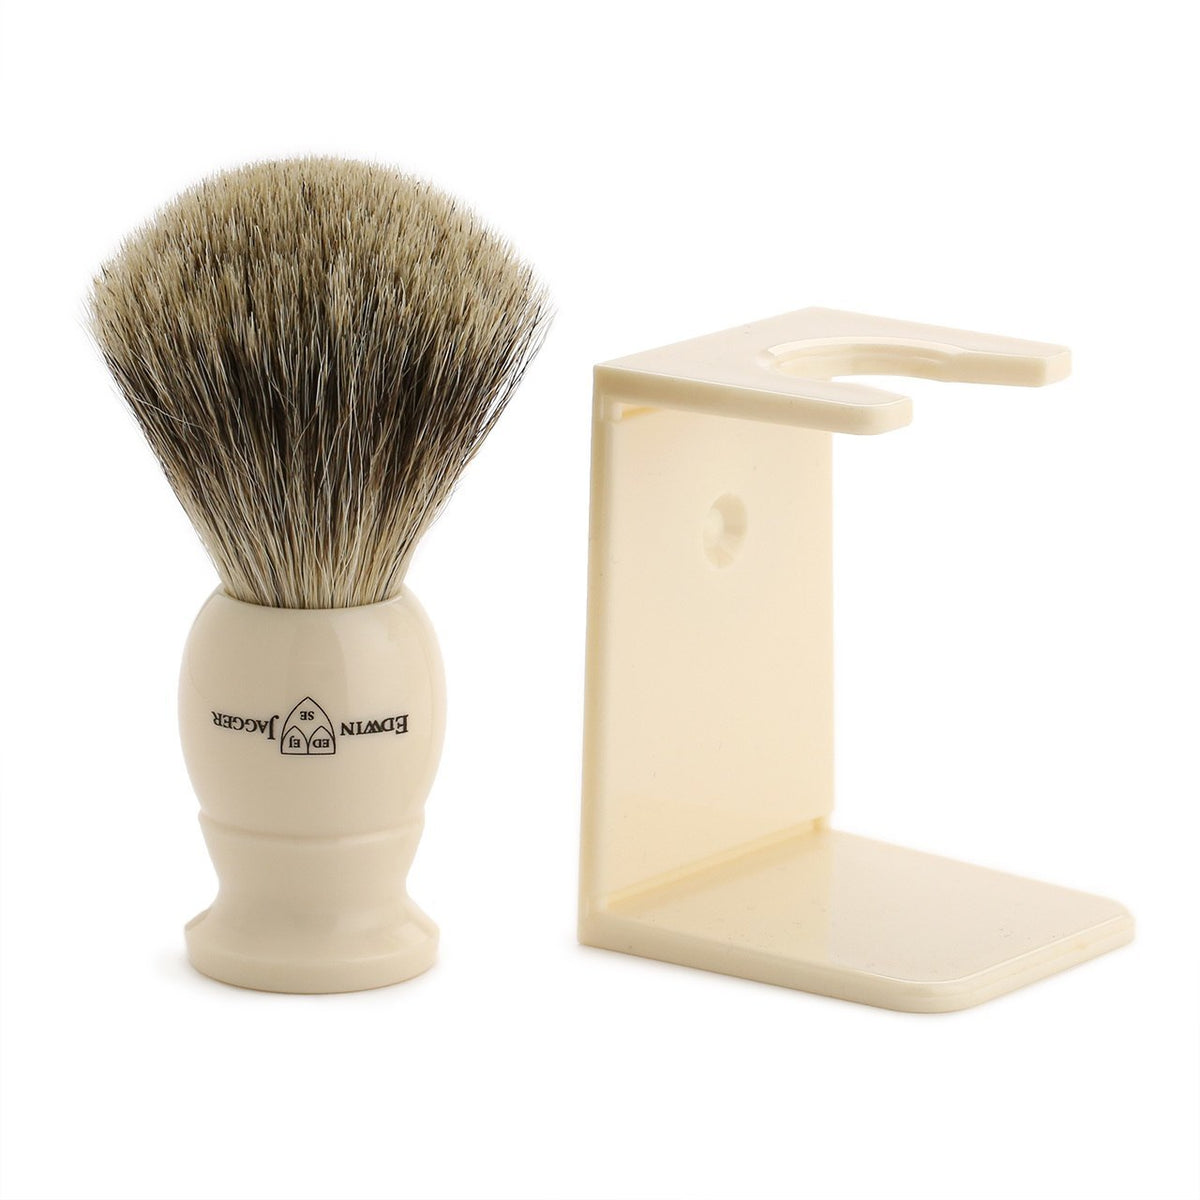 Edwin Jagger Imitation Ivory Shaving Brush & Aloe Vera Shave Cream Gift Set